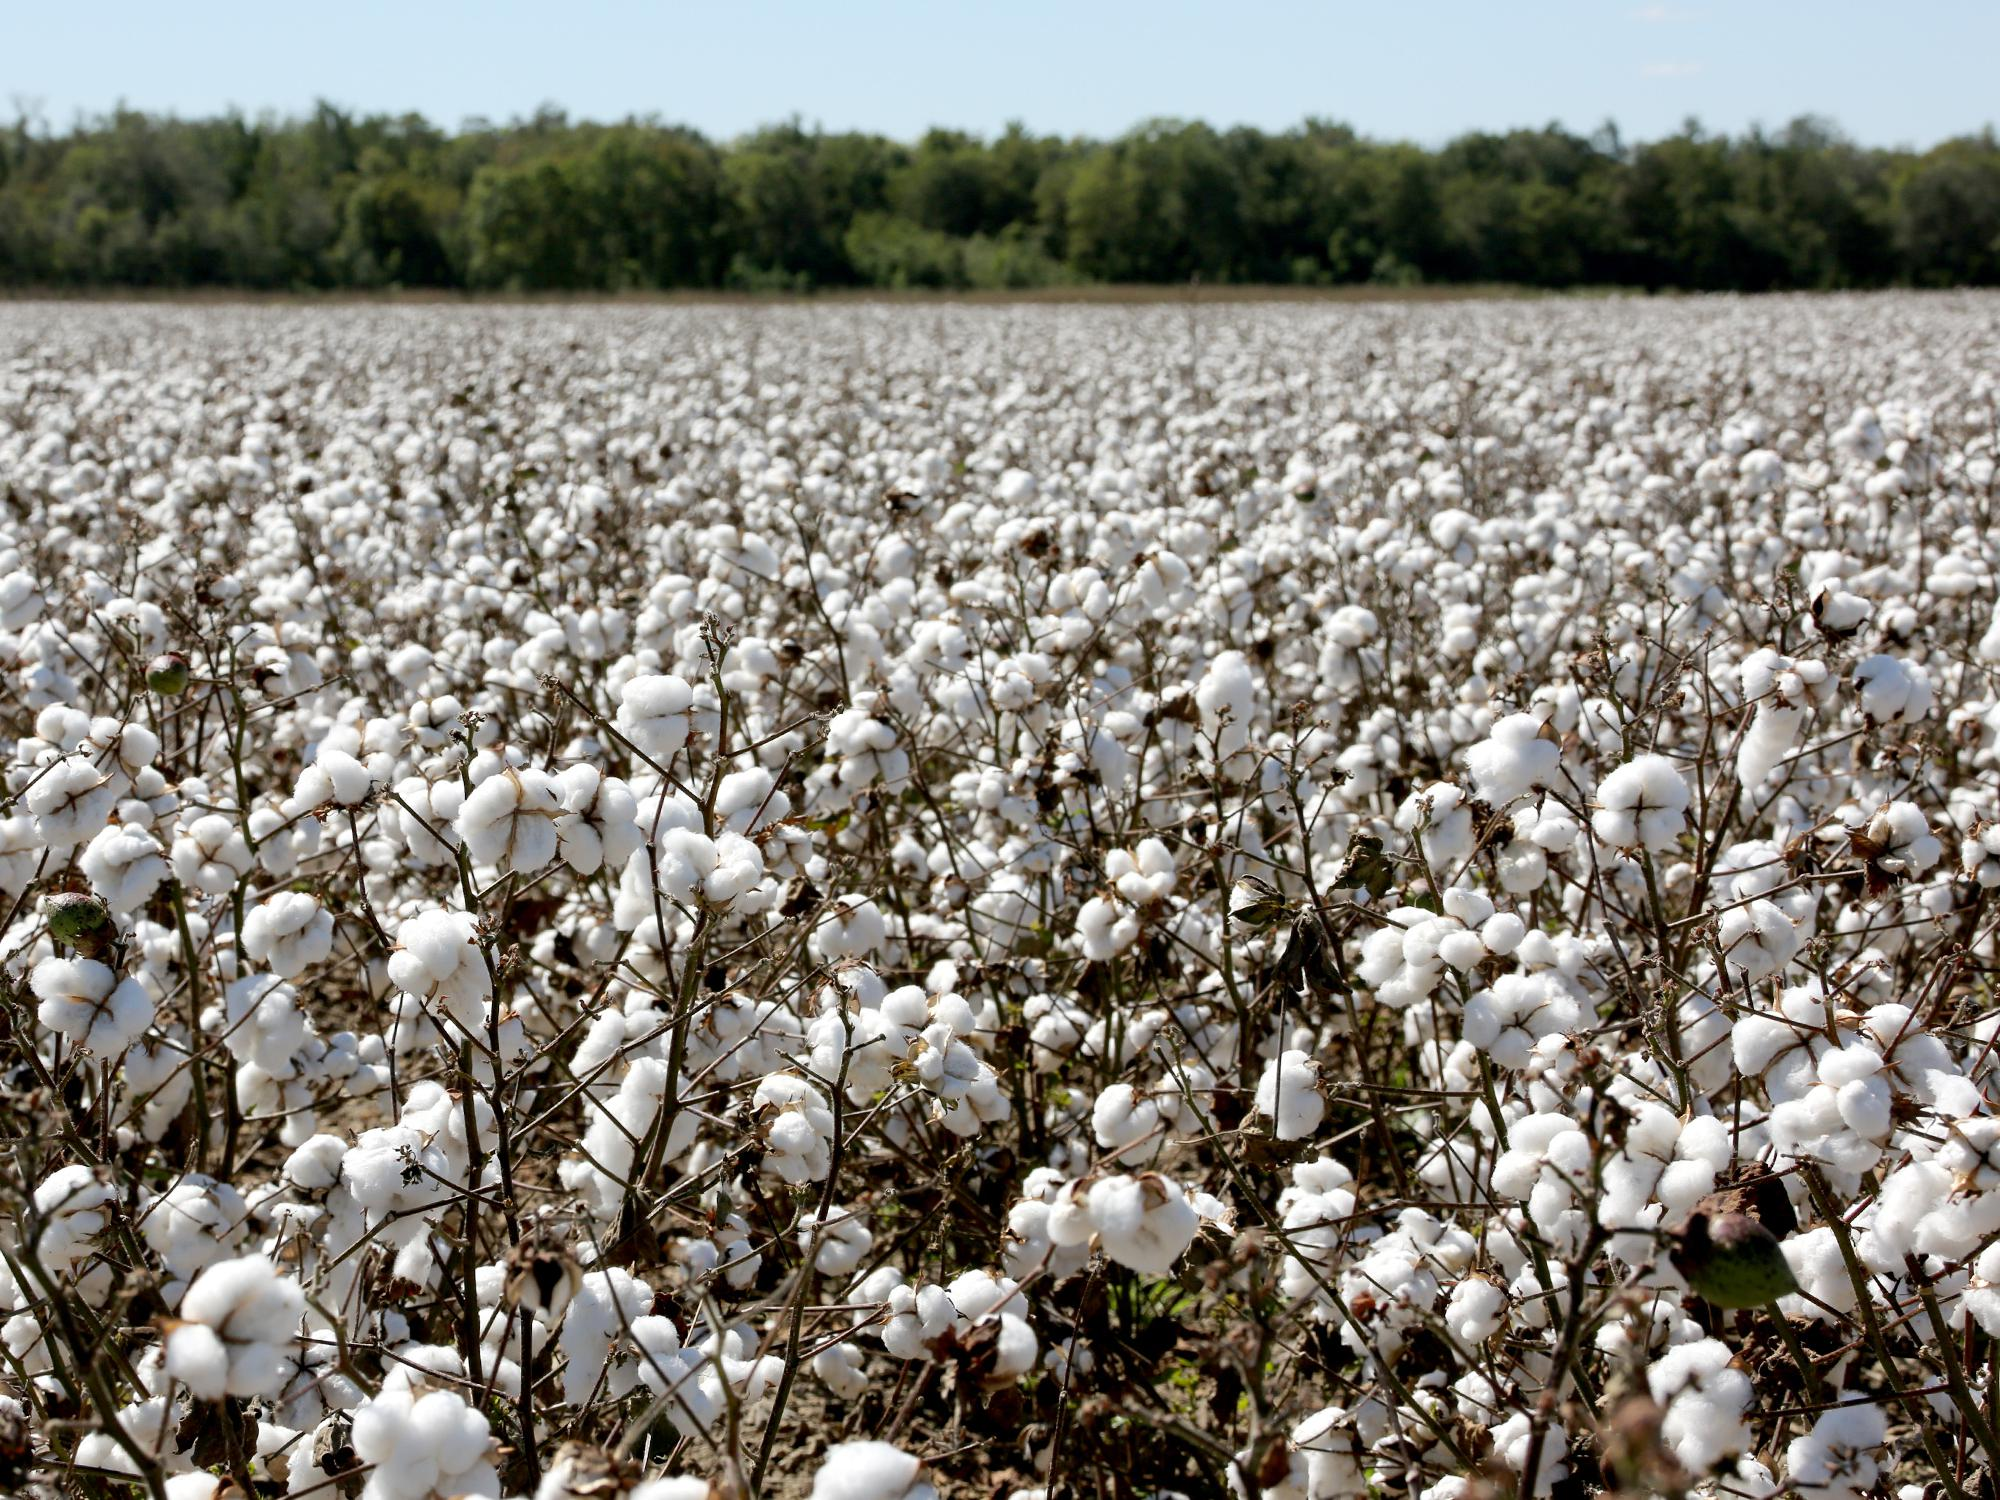 Mississippi cotton farmers are more than halfway through harvesting what is expected to be the fourth straight year the state has averaged more than 1,000 pounds of cotton per acre. This Coahoma County cotton was waiting for harvest Sept. 29, 2016. (Photo by MSU Extension Service/Kat Lawrence)